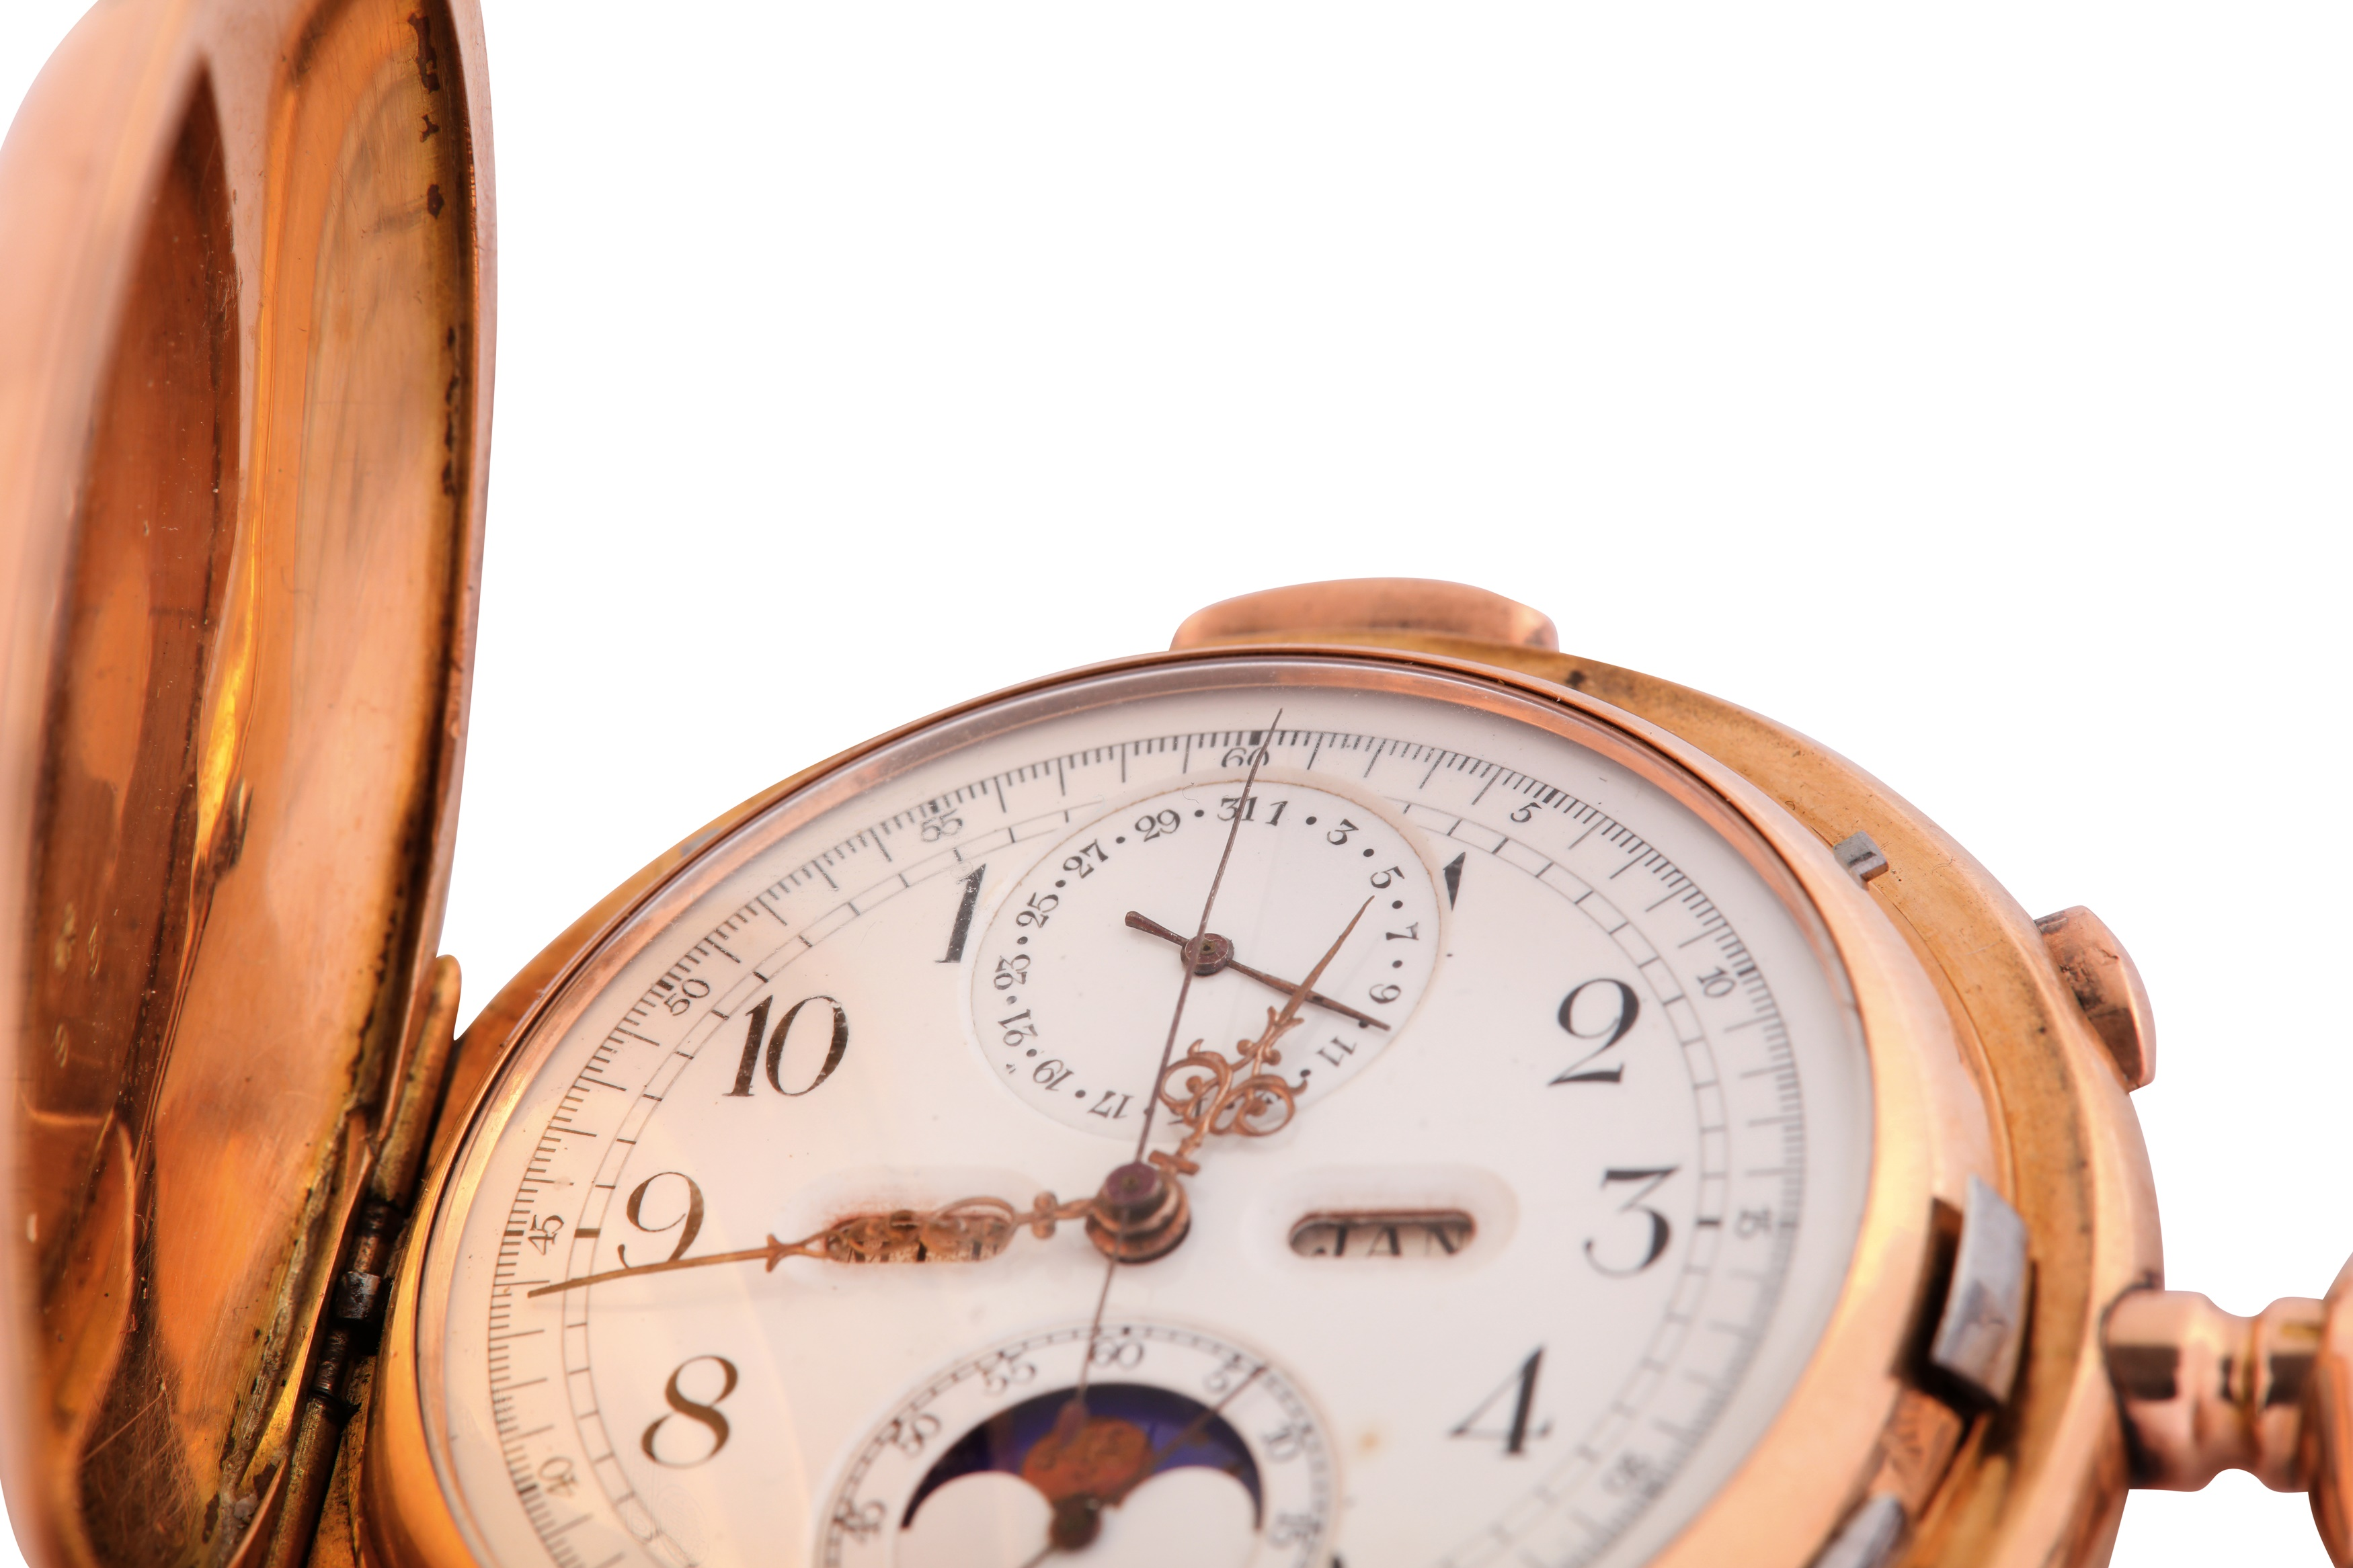 POCKET WATCH. - Image 2 of 5